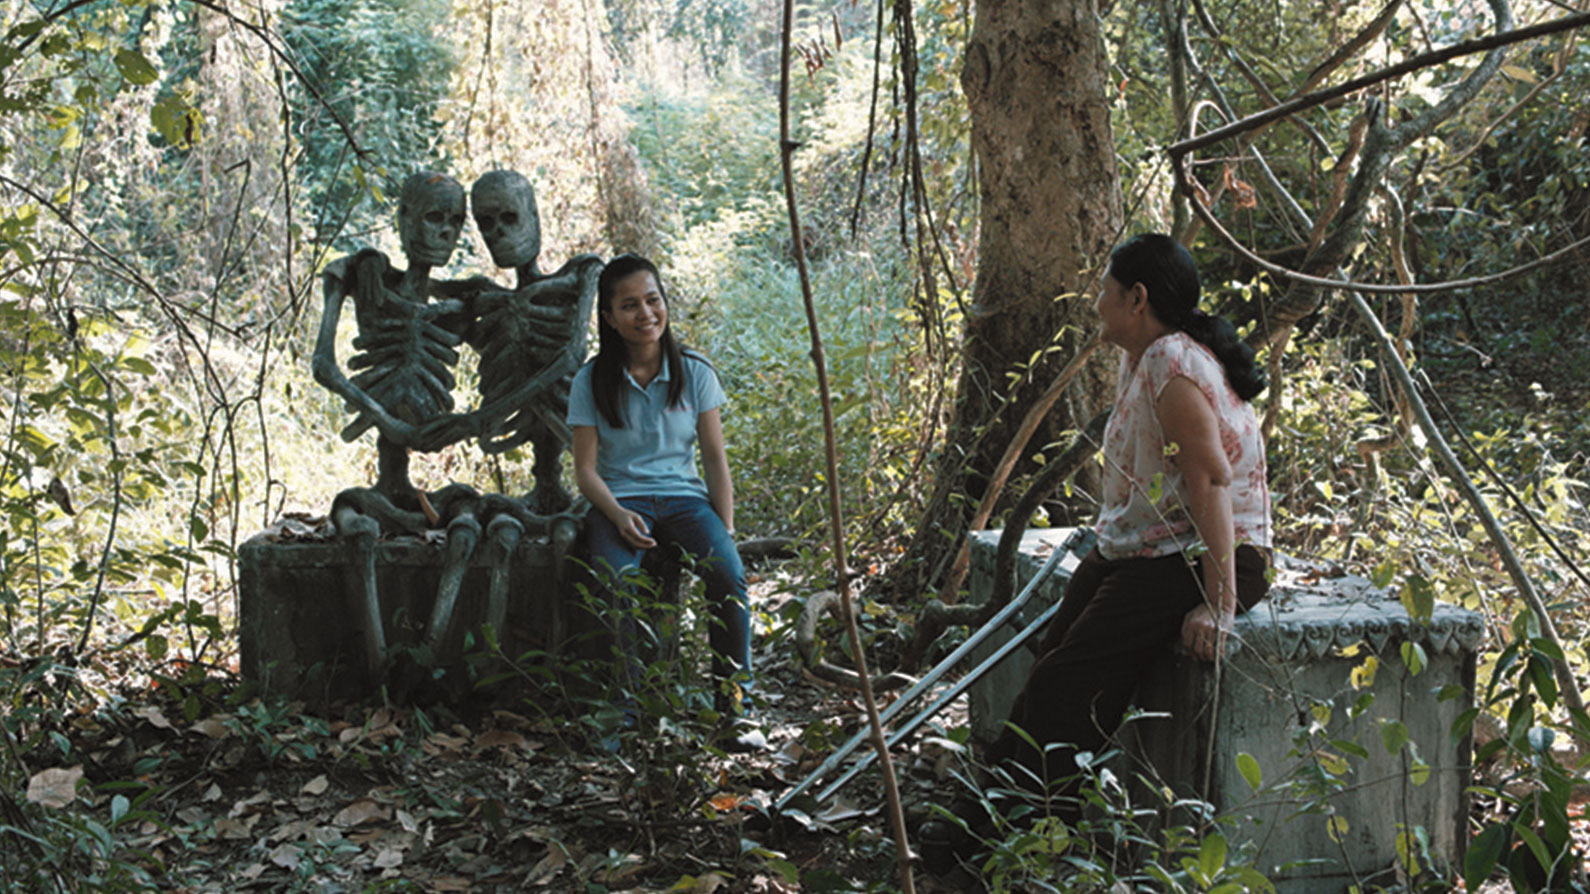 Jarinpattra Rueangram as Keng and Jenjira Pongpas as Jen in Apichatpong Weerasethakul's Cemetery of Splendor, 2015